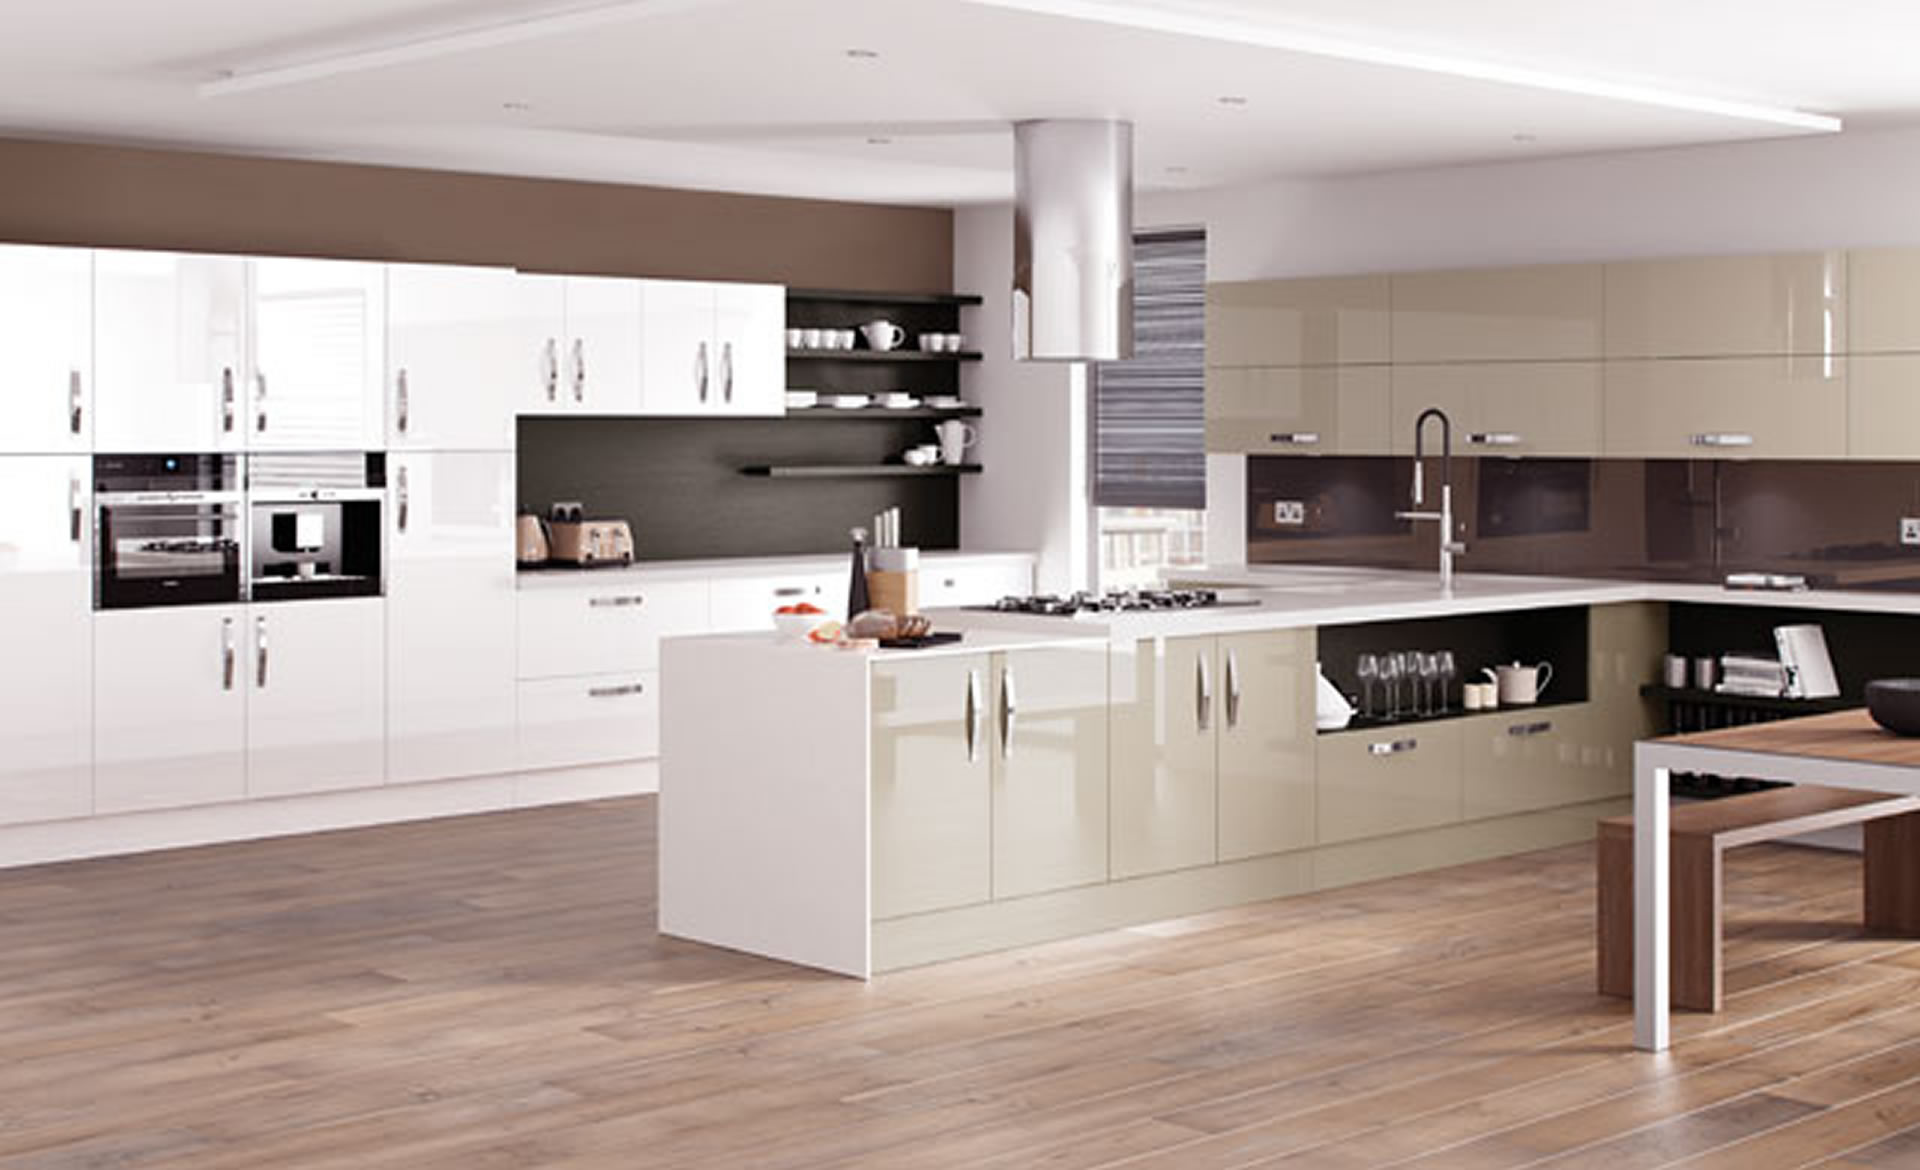 Kitchen designs astro gloss dakar and white for What are the kitchen designs